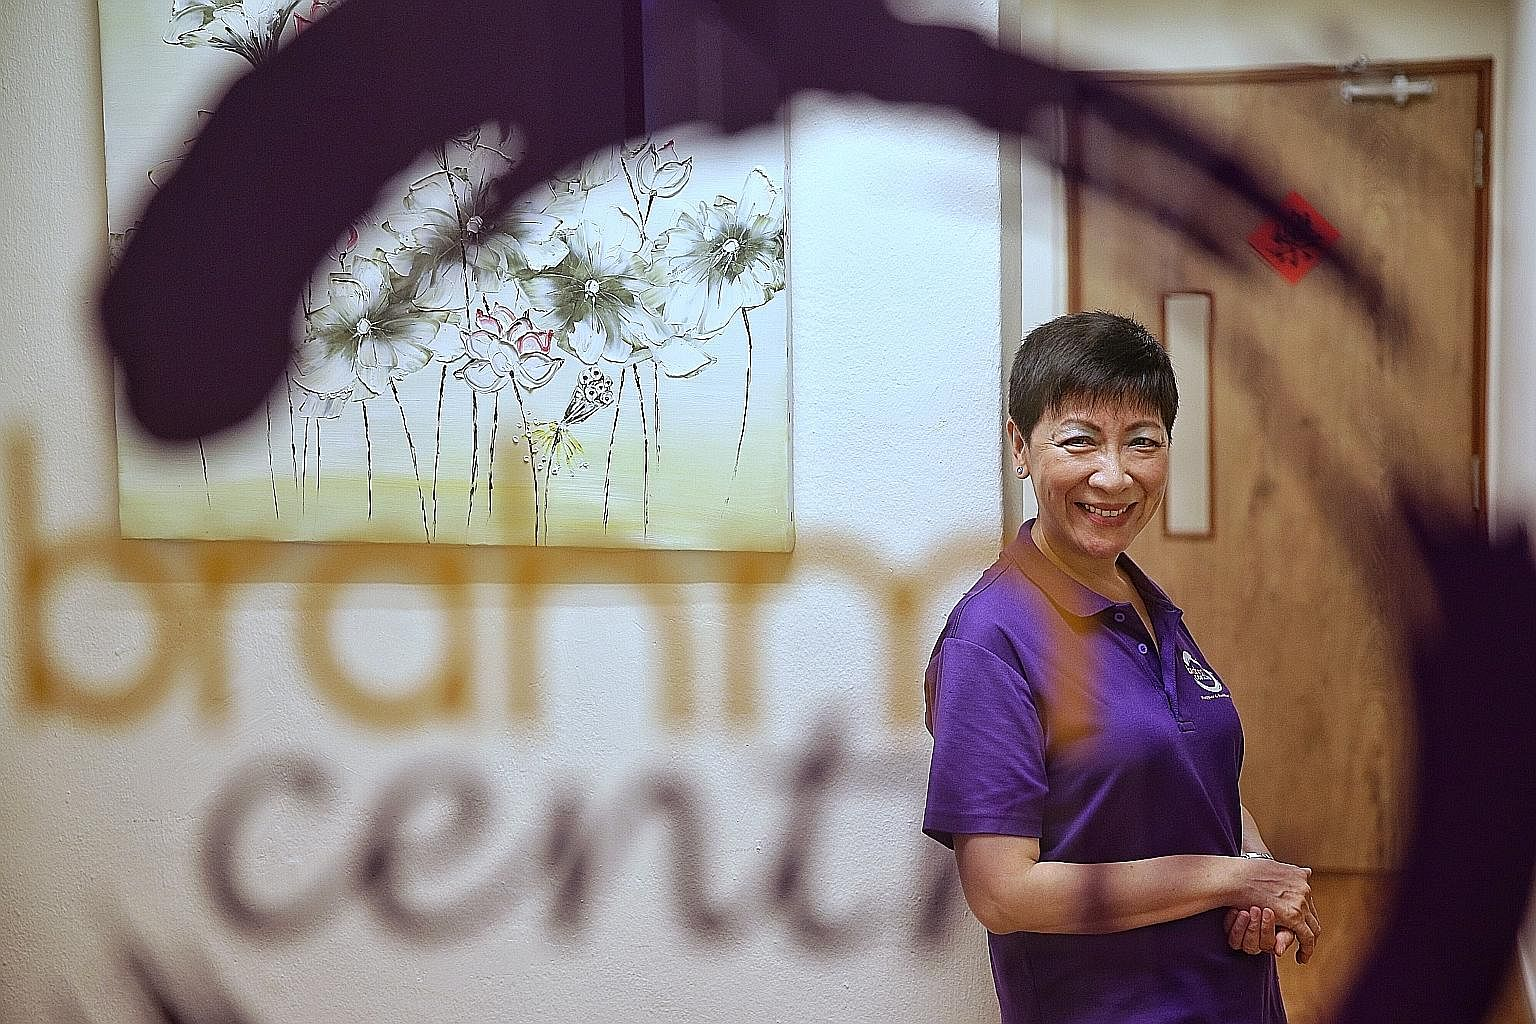 Ms Chew performing karate moves as a child, under the watchful eyes of her late father Chew Choo Soot, a karate grand master. After recovering from depression brought on by work stress and family issues, Ms Angie Chew, in 2012, set up Brahm Centre, a